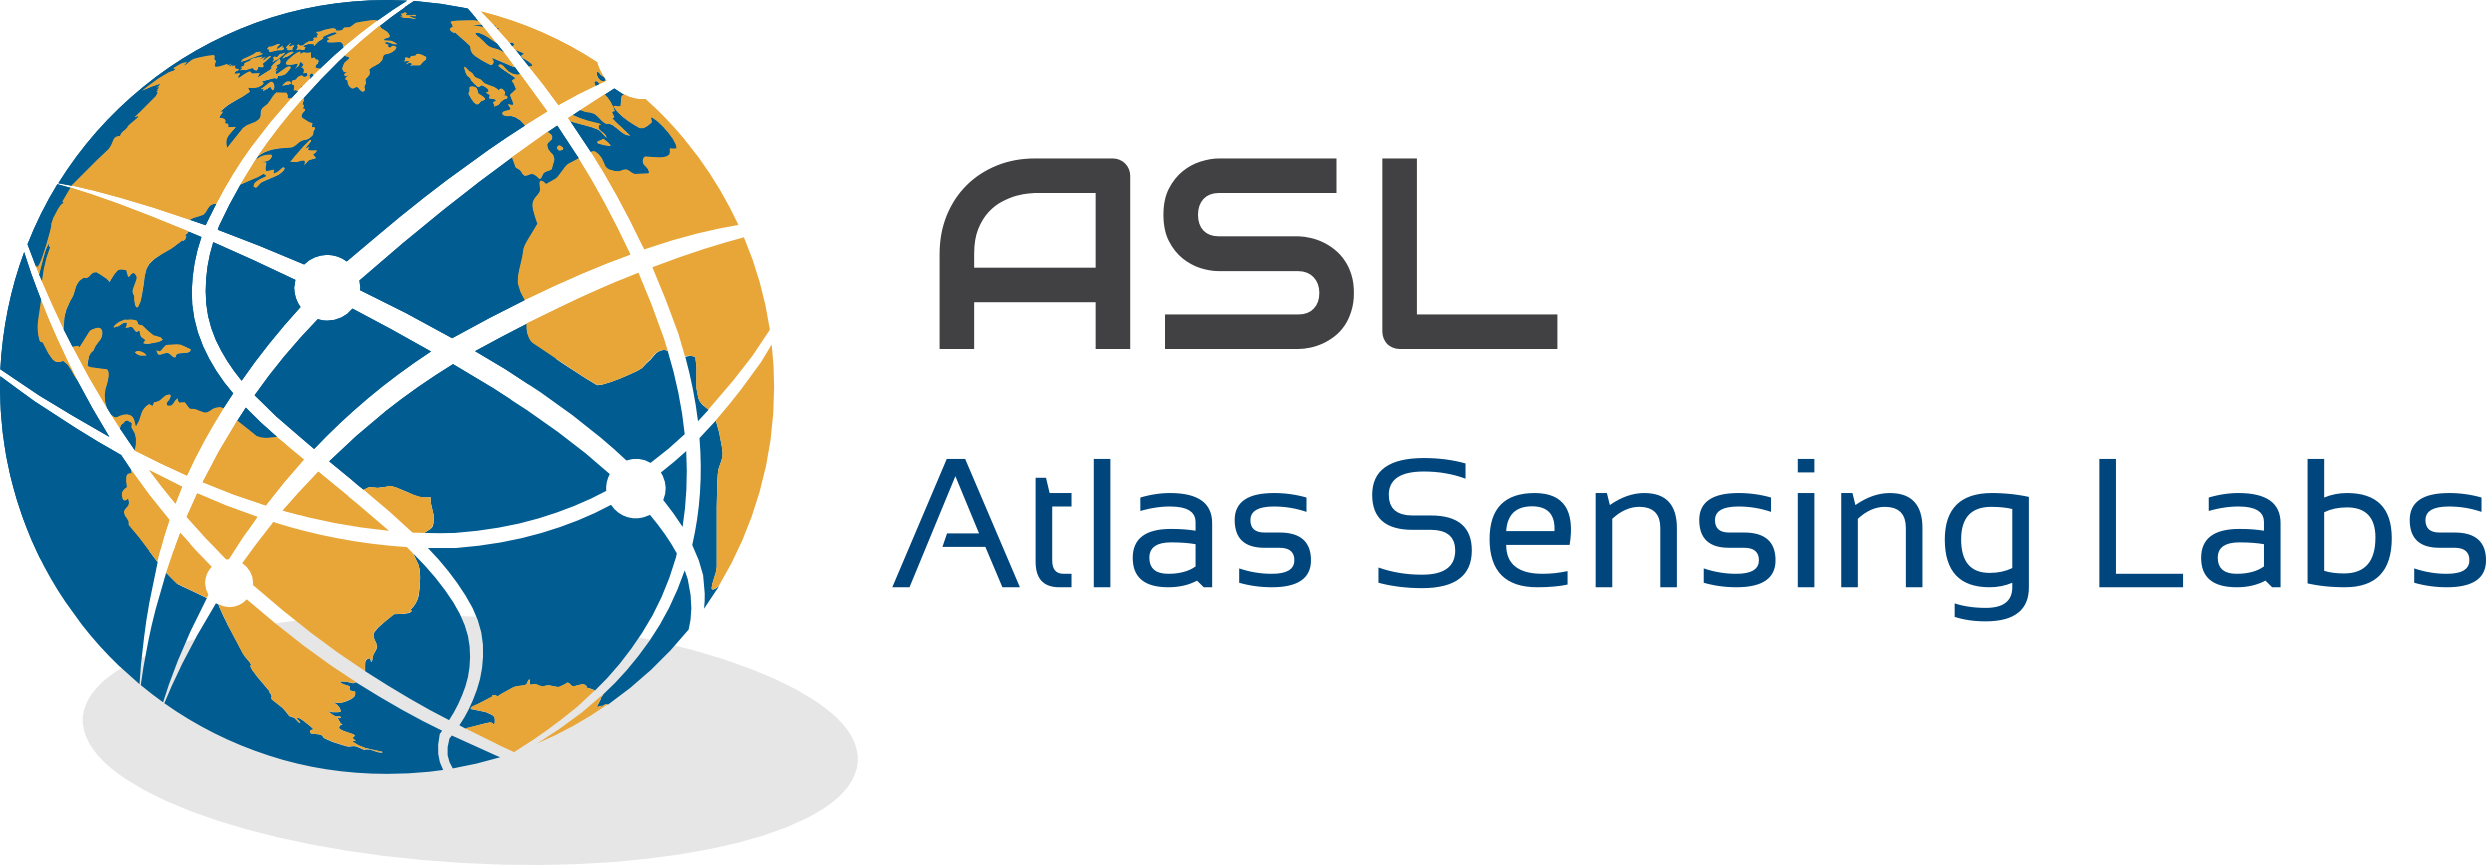 Atlas Sensing Labs